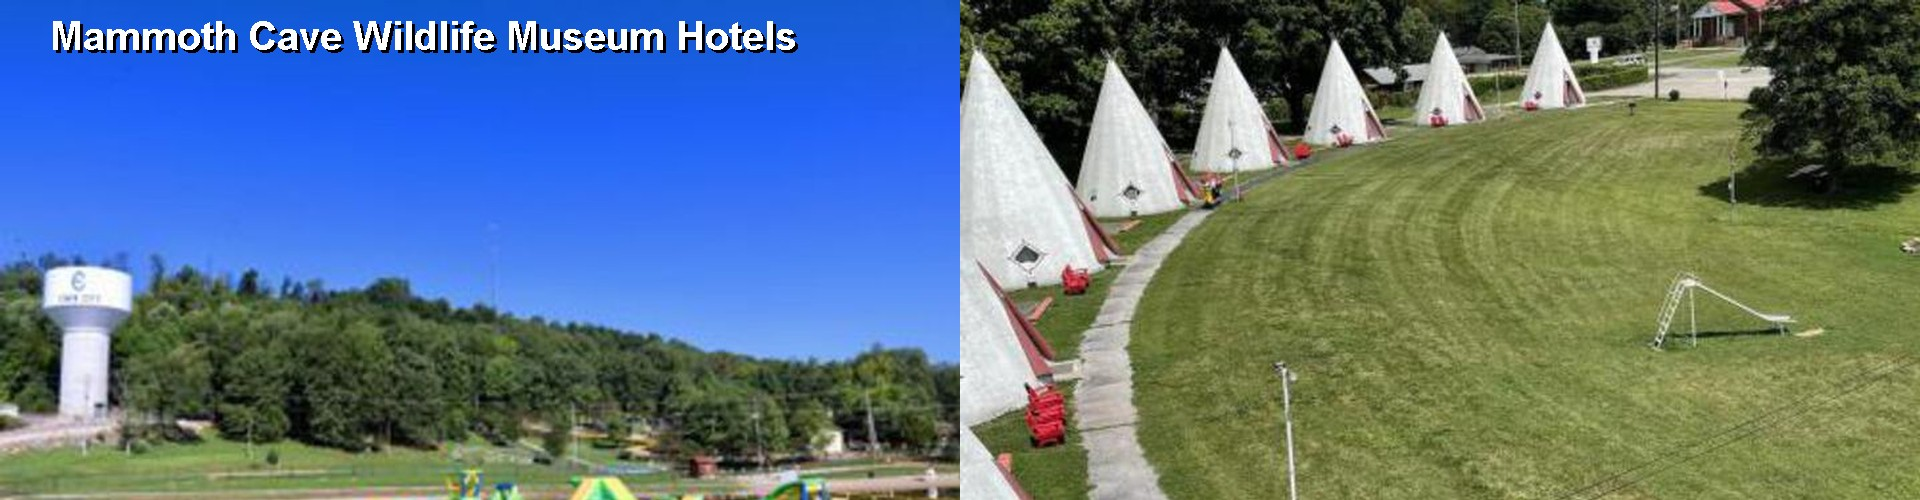 5 Best Hotels near Mammoth Cave Wildlife Museum